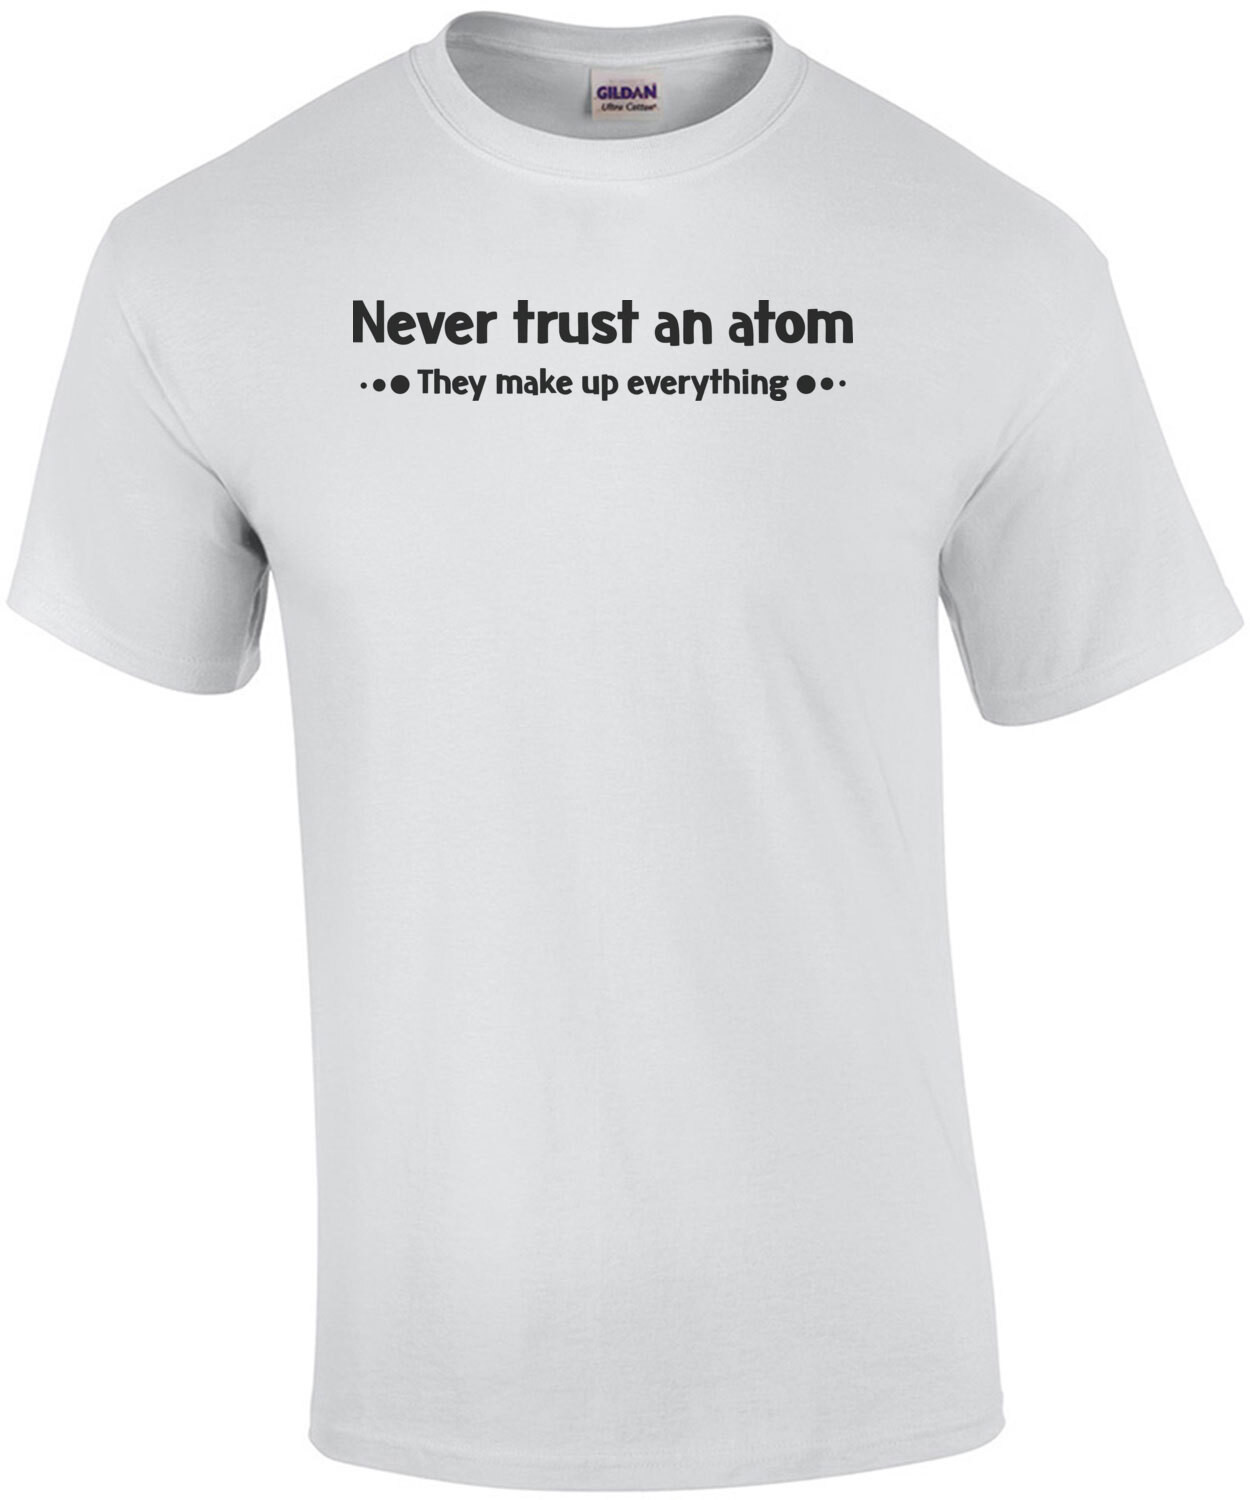 NEVER TRUST AN ATOM. THEY MAKE EVERYTHING UP. Shirt